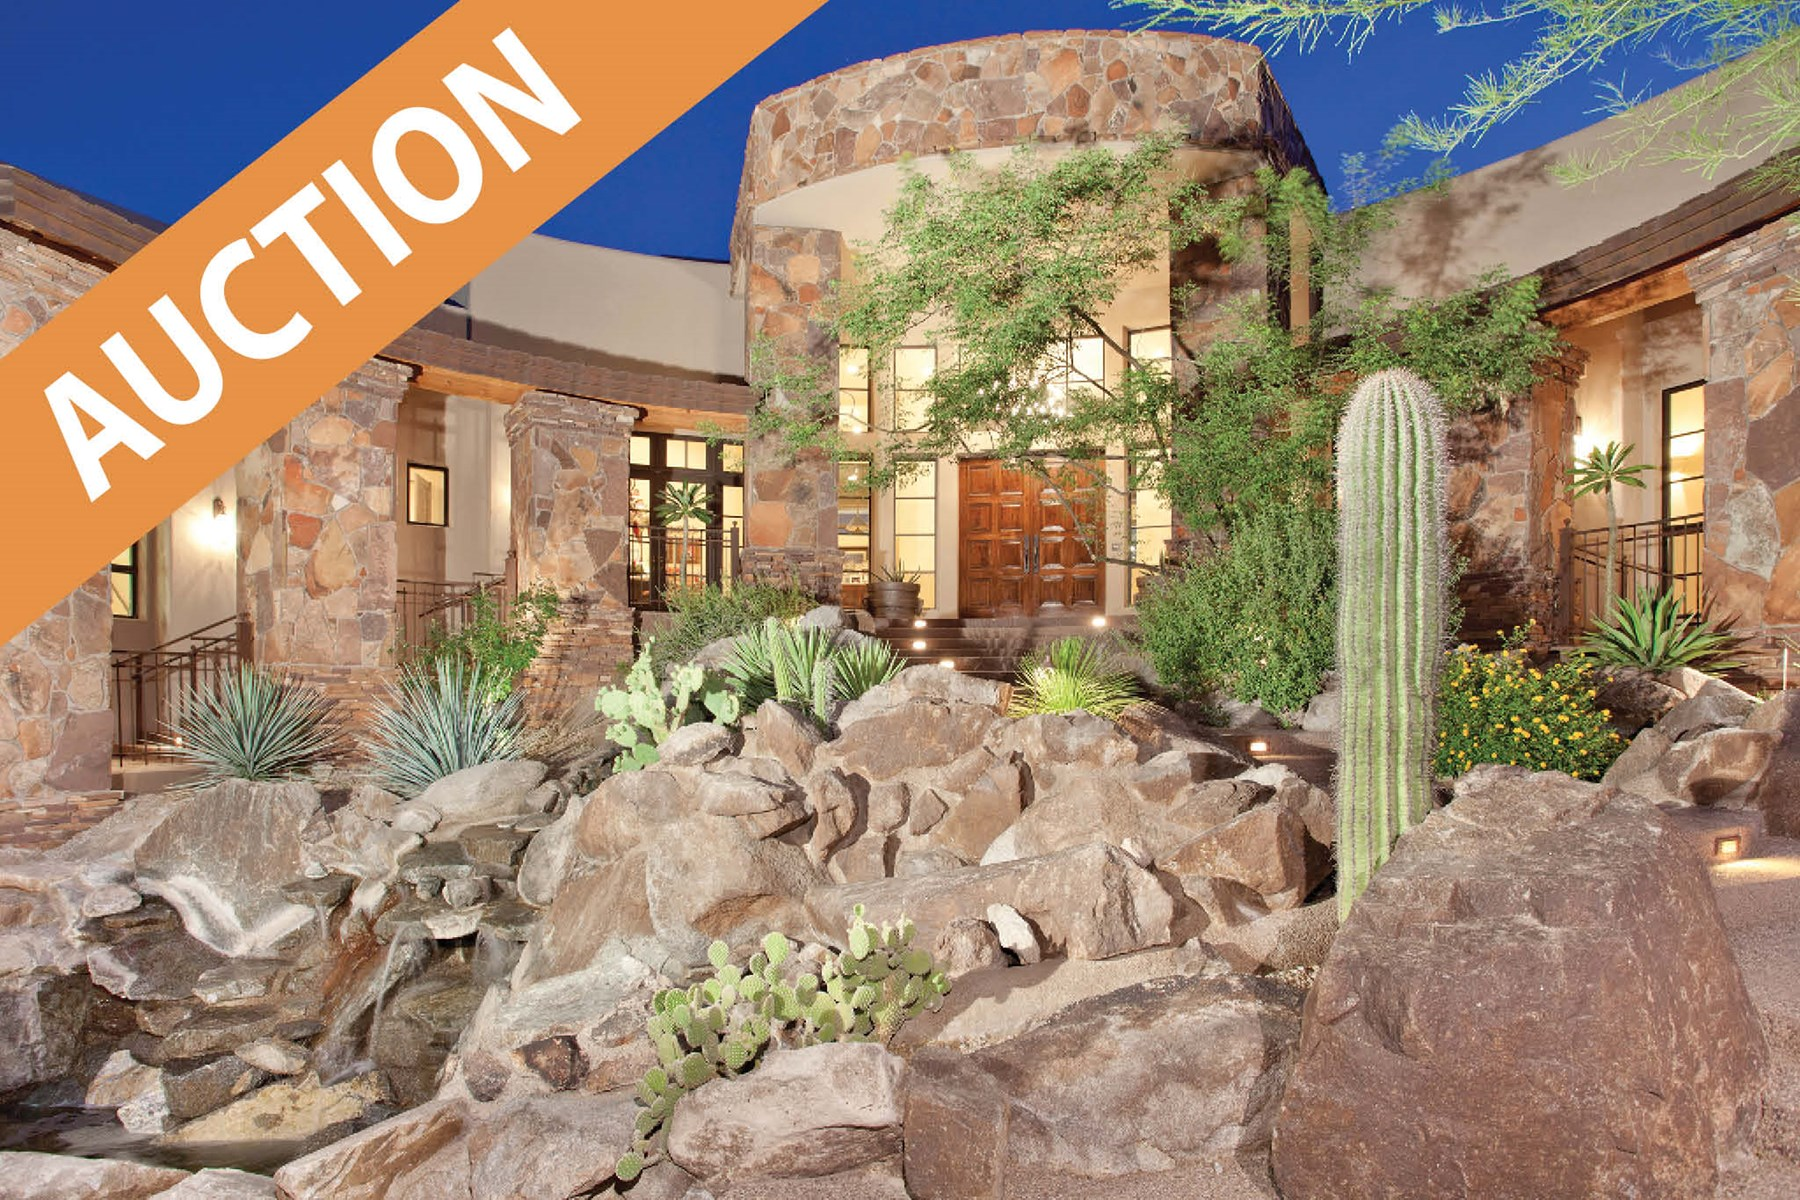 AHWATUKEE PHOENIX AZ MOUNTAIN HOME FOR SALE AT AUCTION